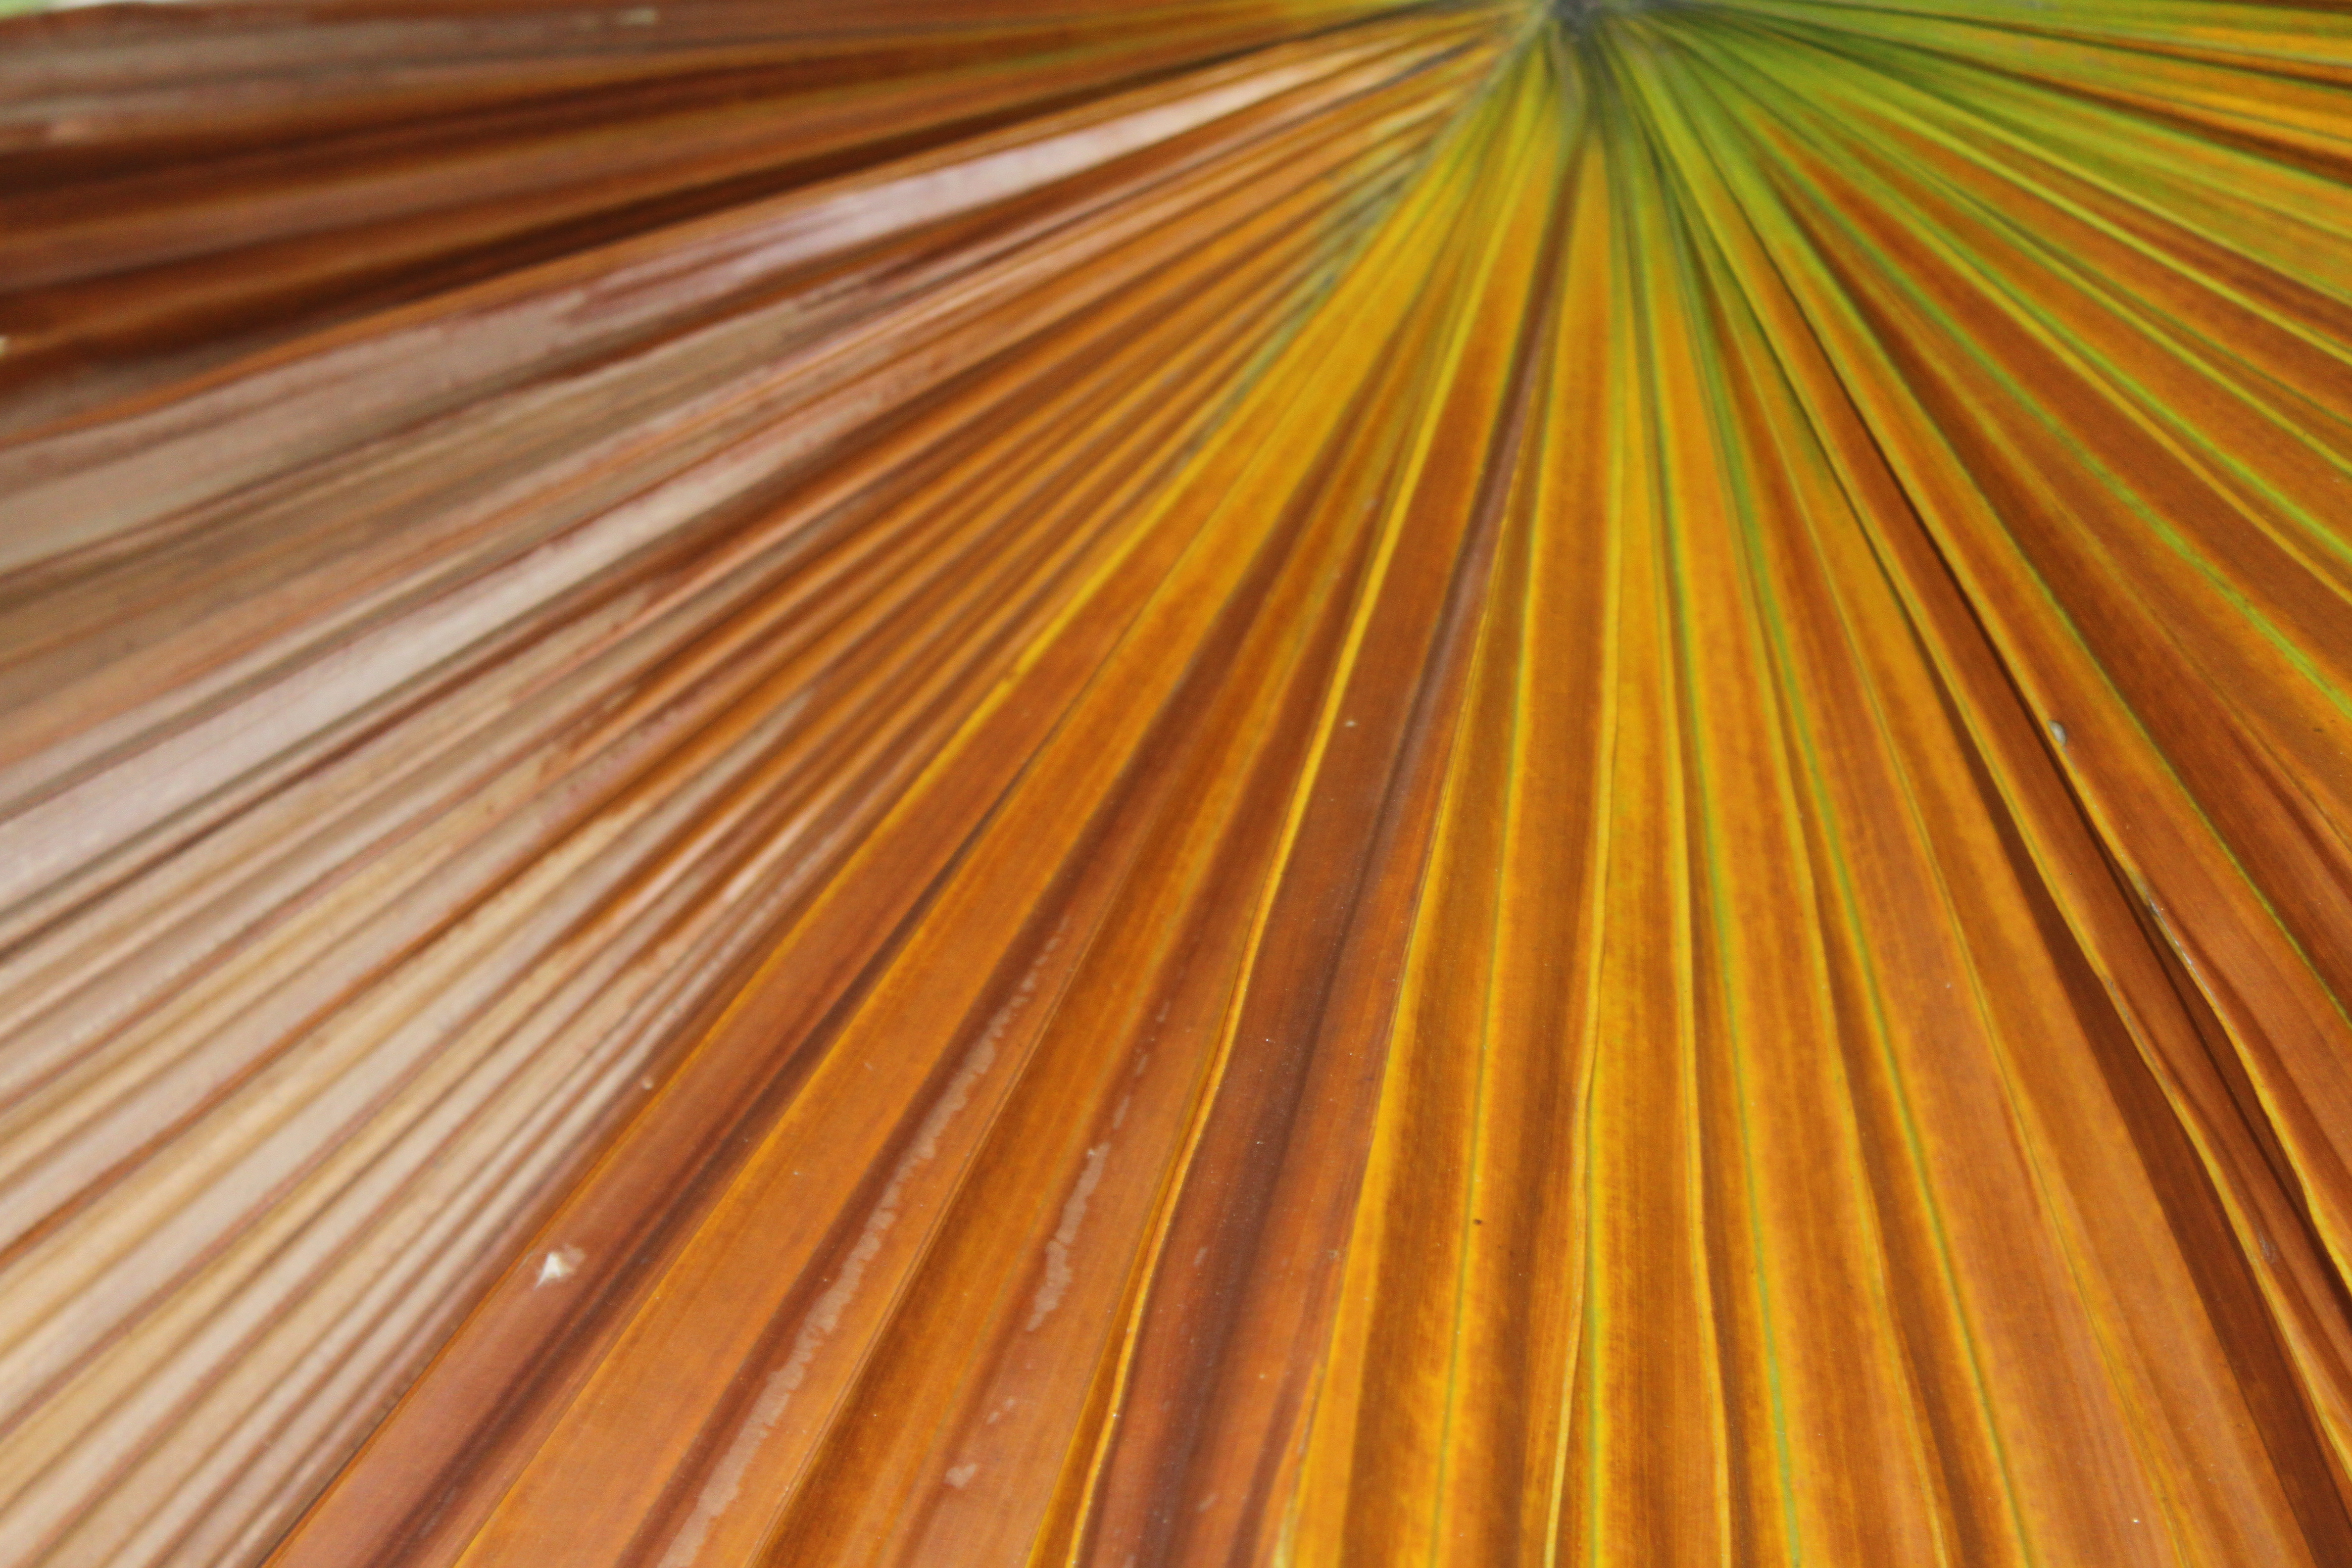 palm leaf texture background image